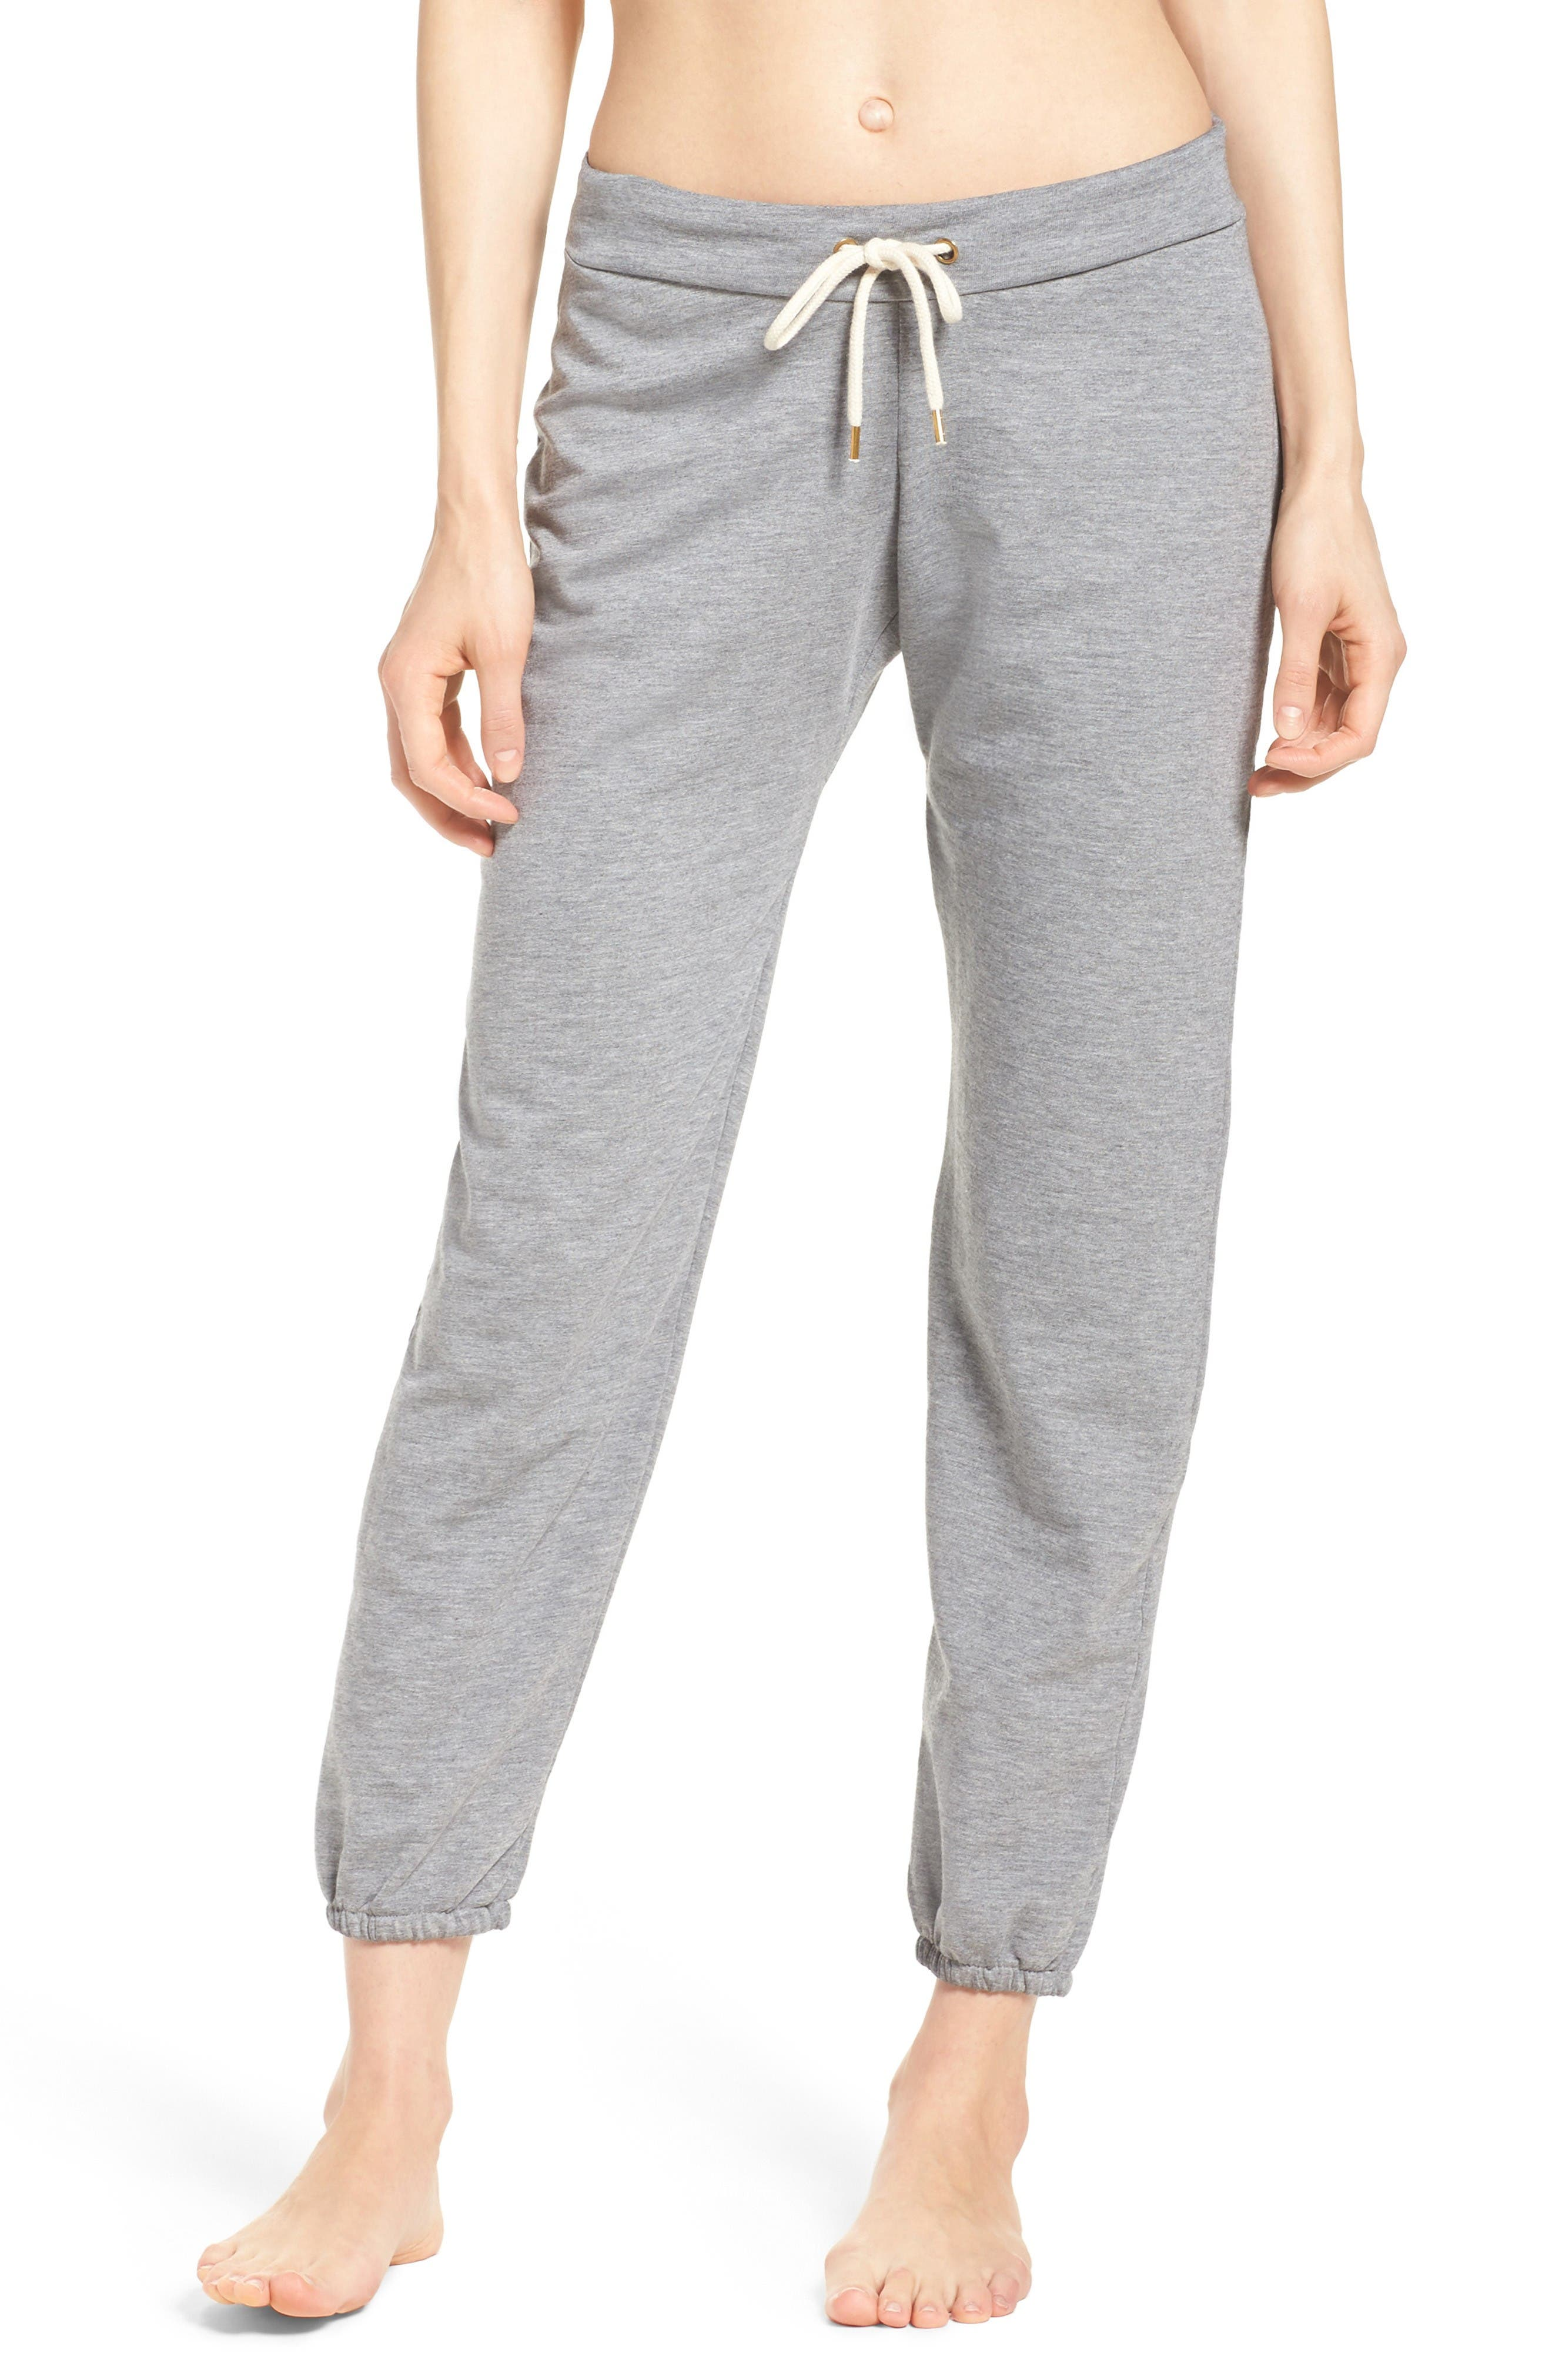 Alternate Image 1 Selected - Honeydew Intimates French Terry Lounge Pants (Nordstrom Exclusive)